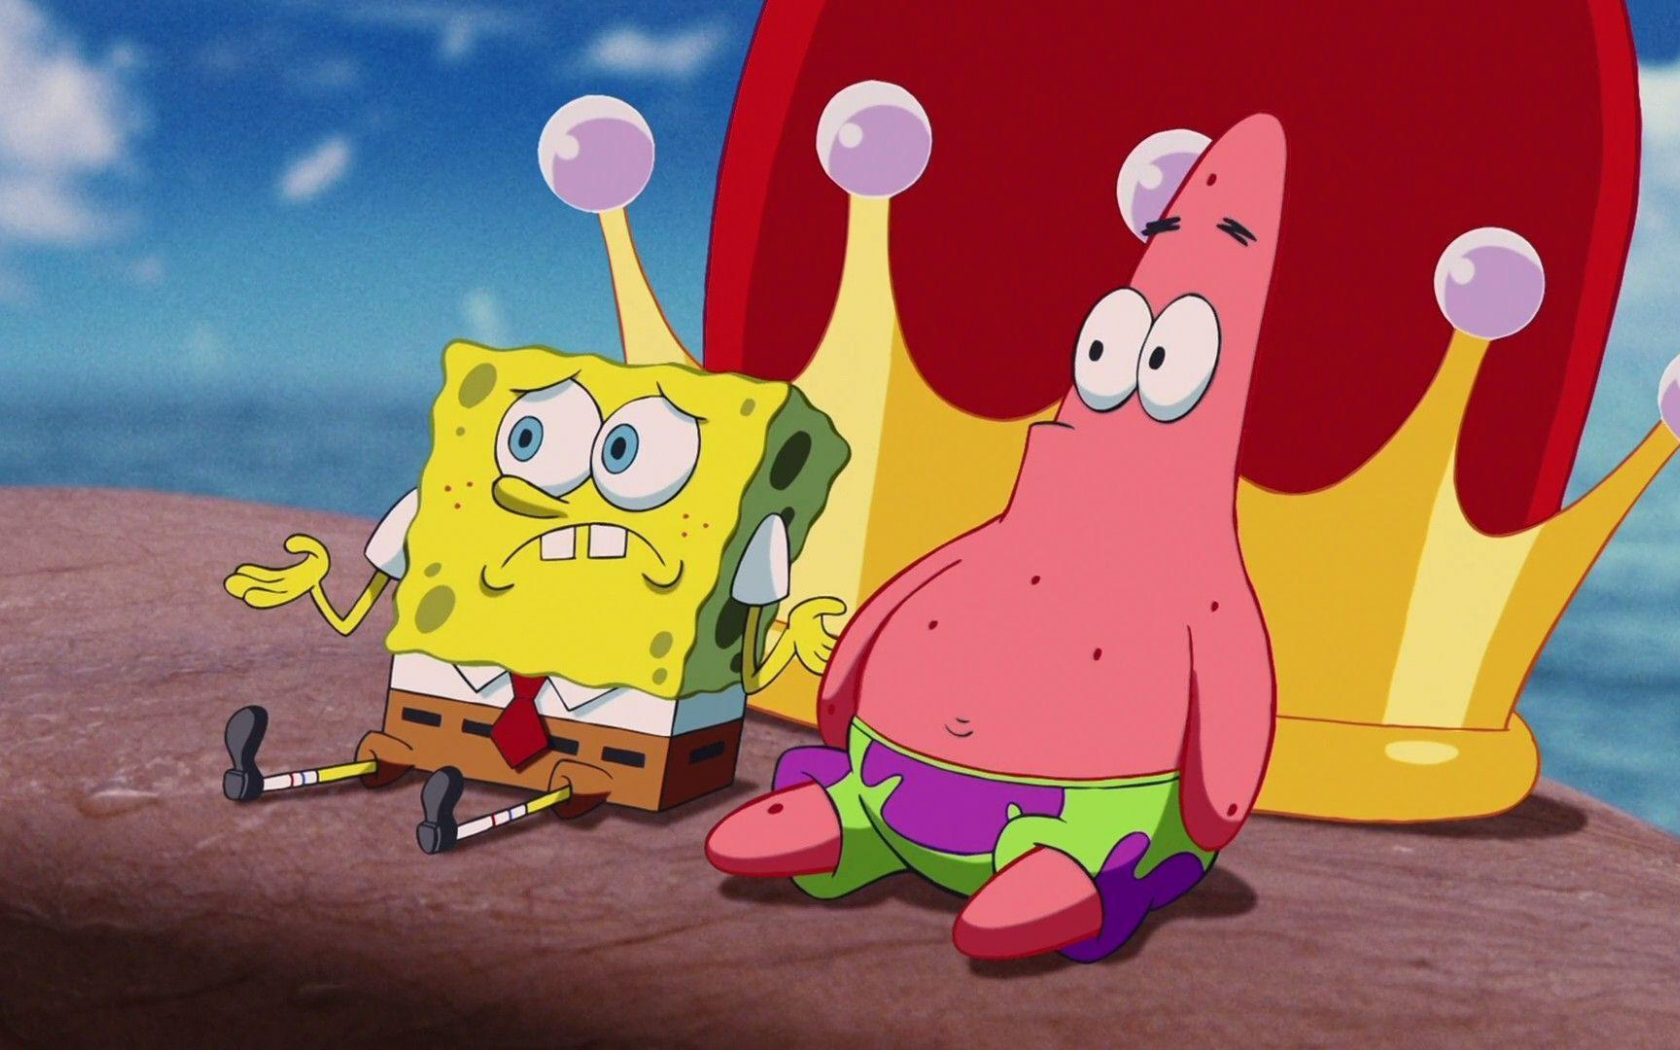 Free Download Funny Spongebob Wallpapers 1920x1080 For Your